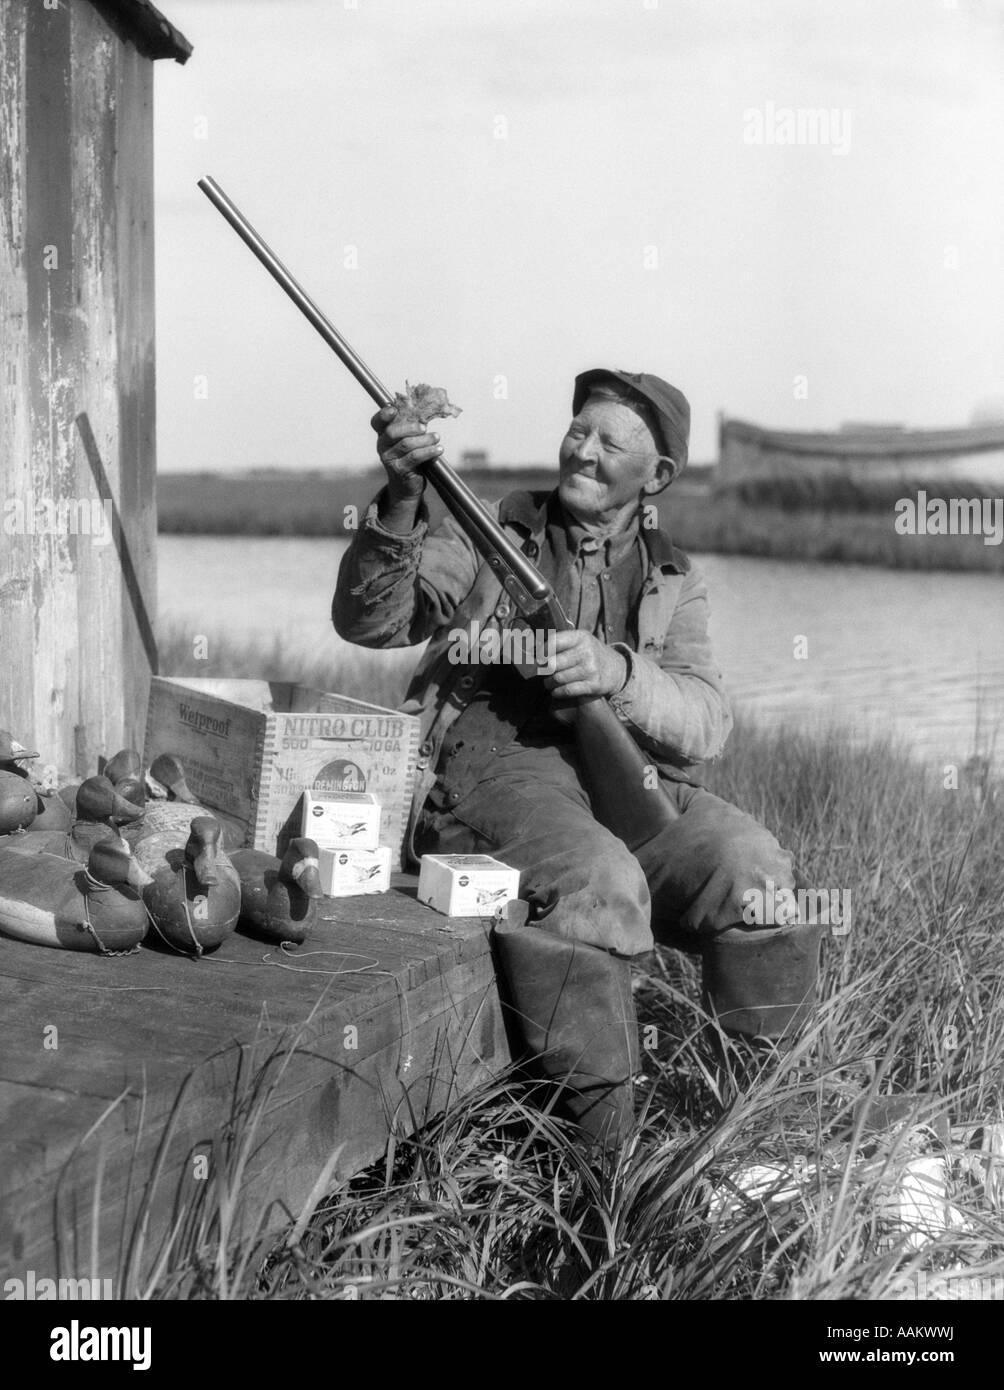 1920s SMILING SENIOR MAN CLEANING PARKER SHOTGUN SURROUNDED BY DUCK DECOYS AMMUNITION BOX BARNEGAT BAY, NEW JERSEY, - Stock Image